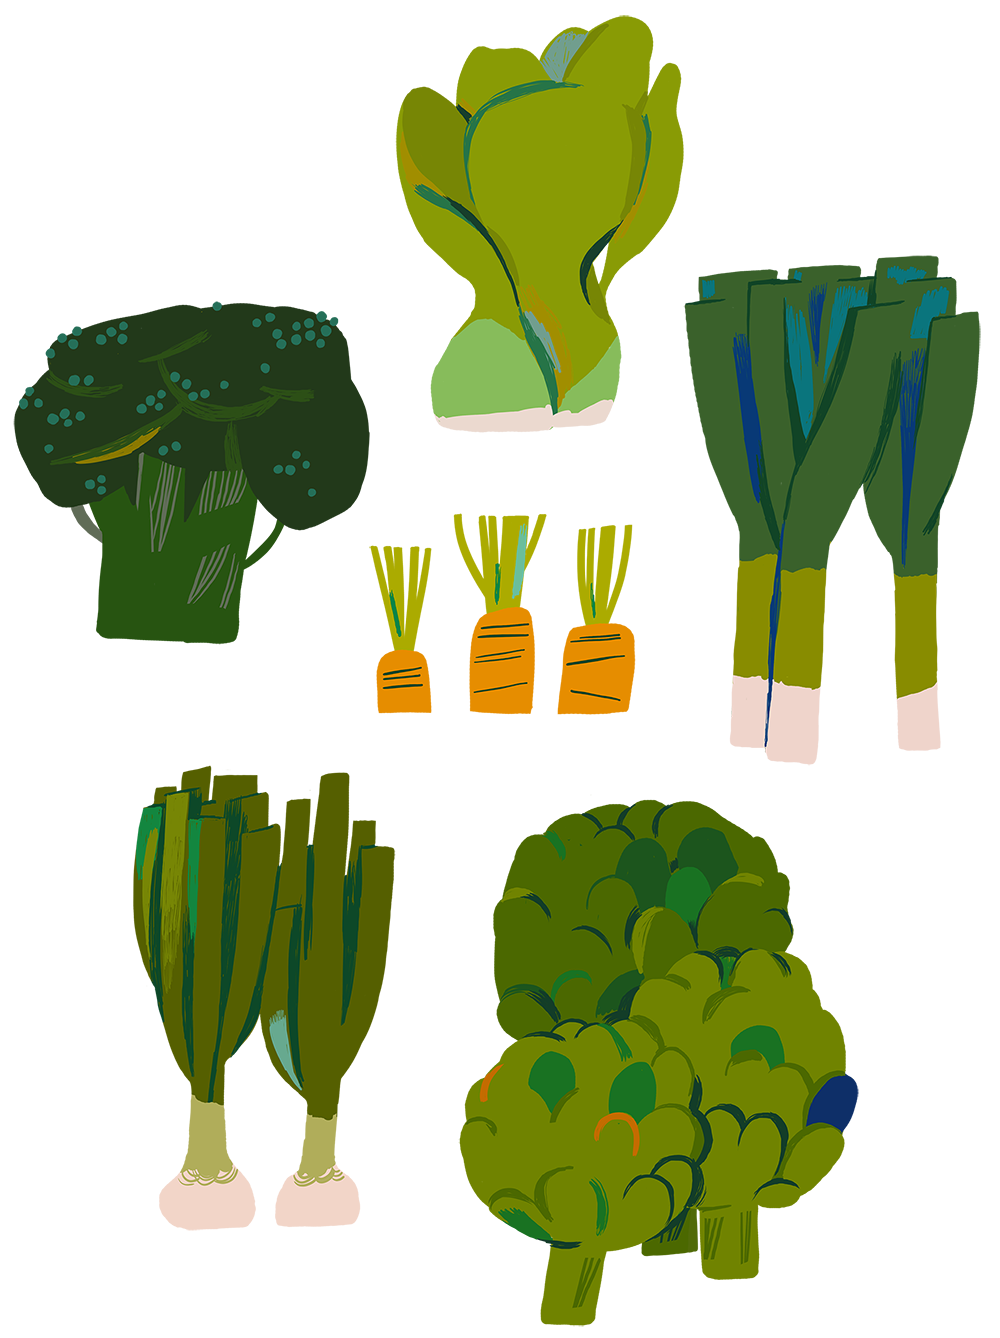 Drawing vegetable design. Vegetables green grow your